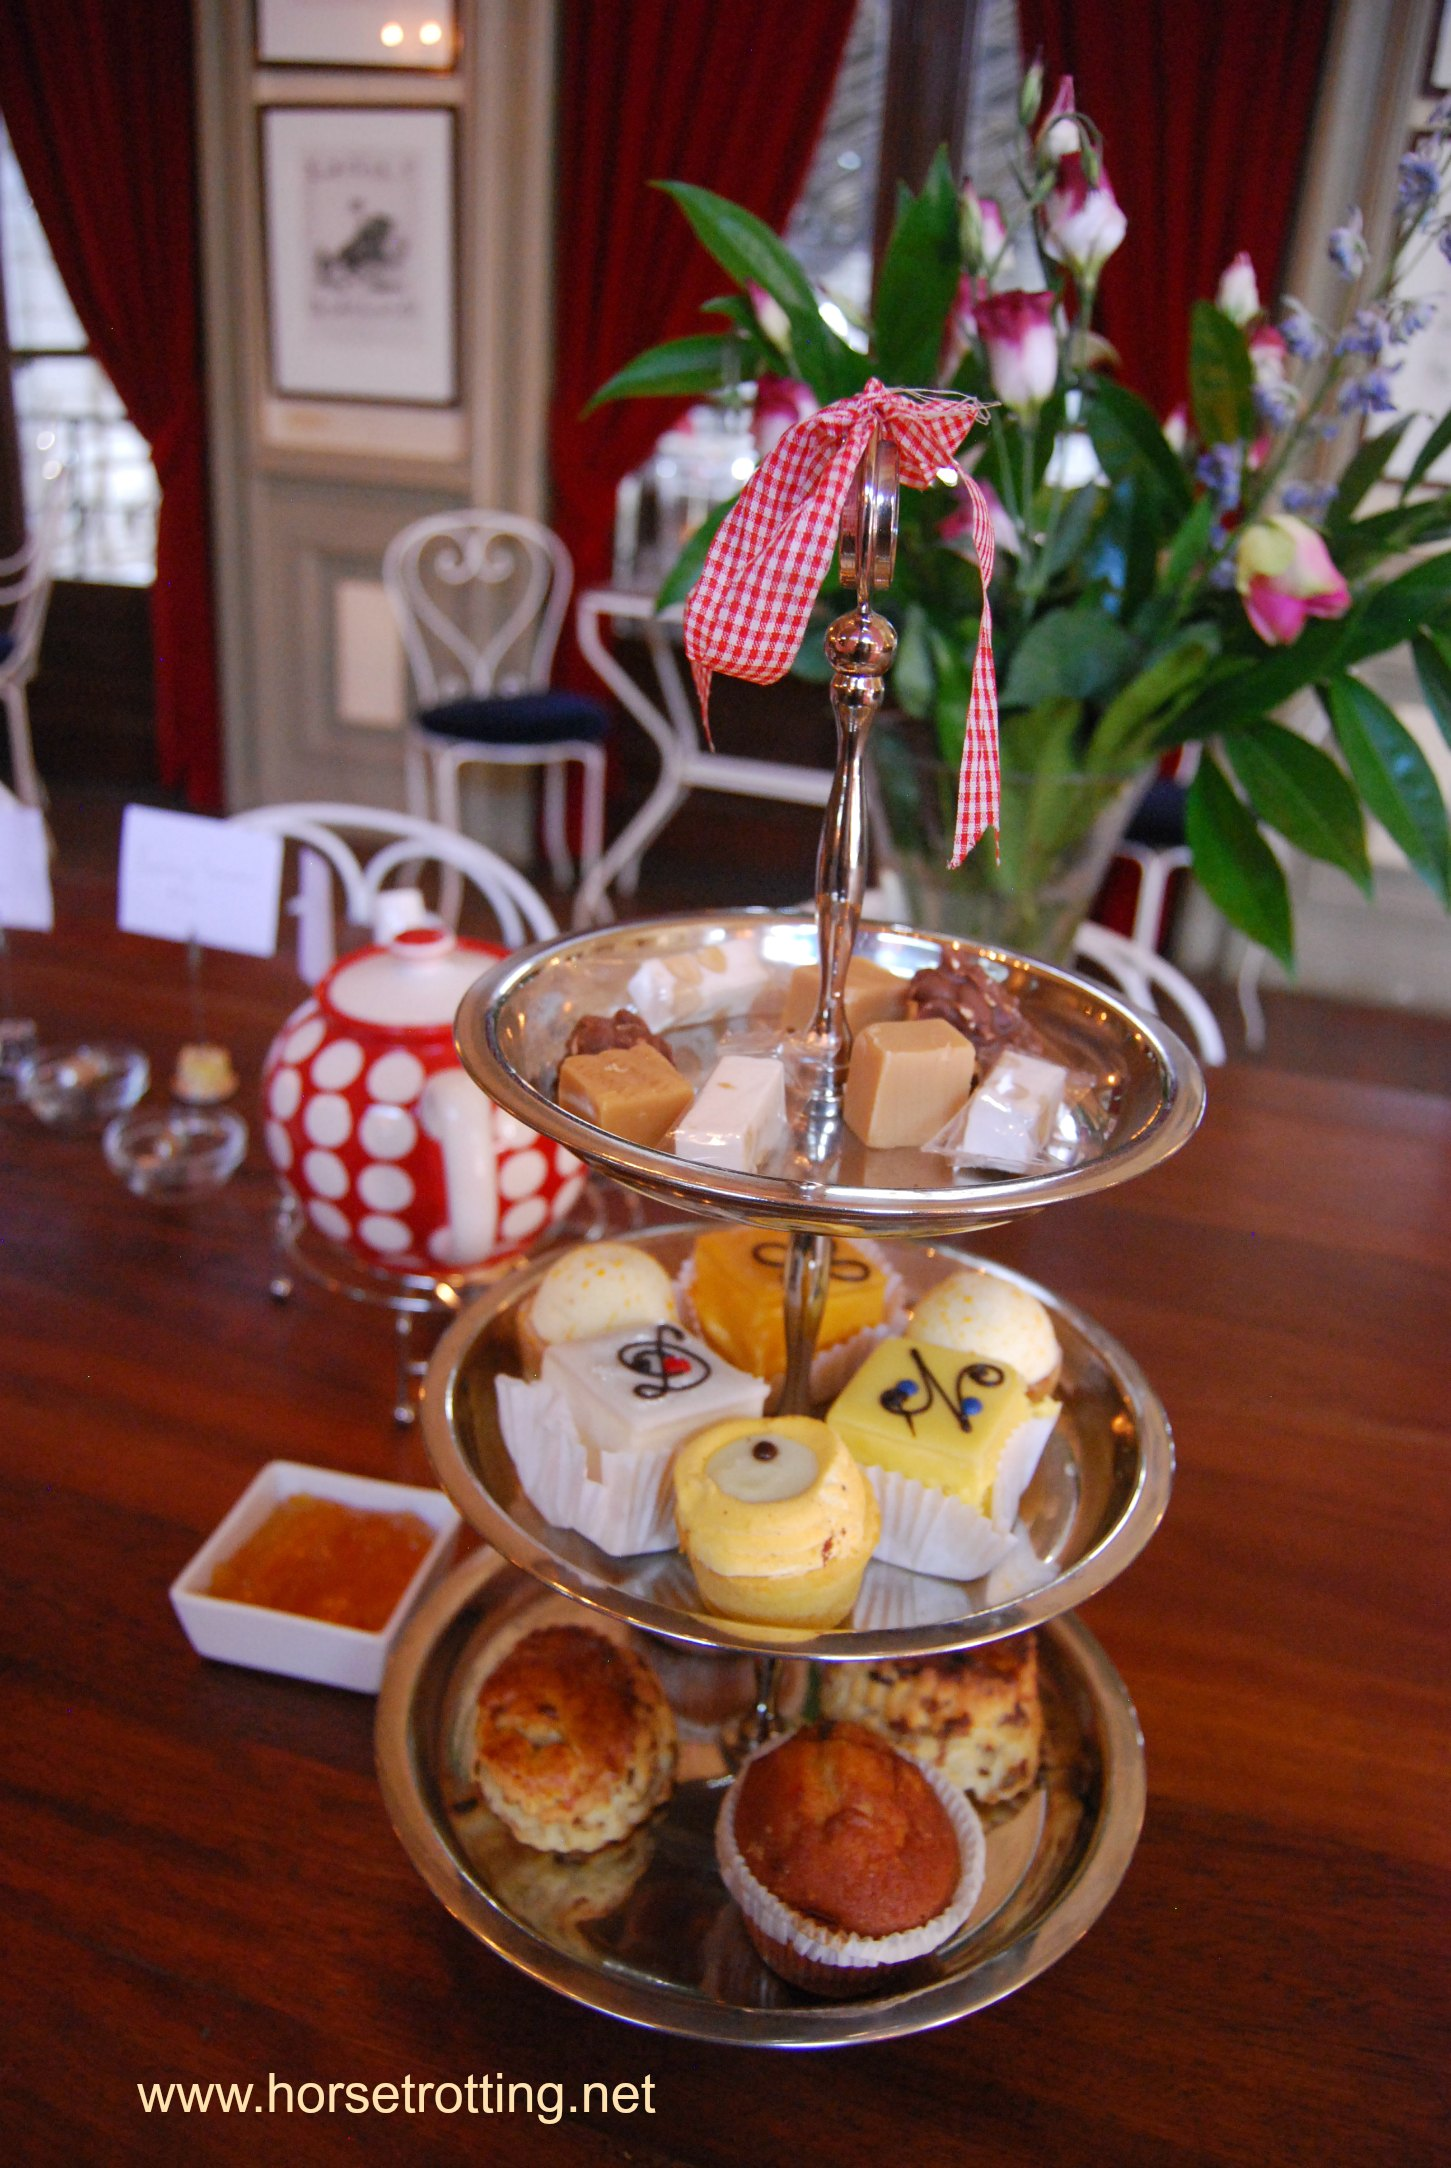 high tea at Hollandsche Manege Riding School in Amsterdam, Holland